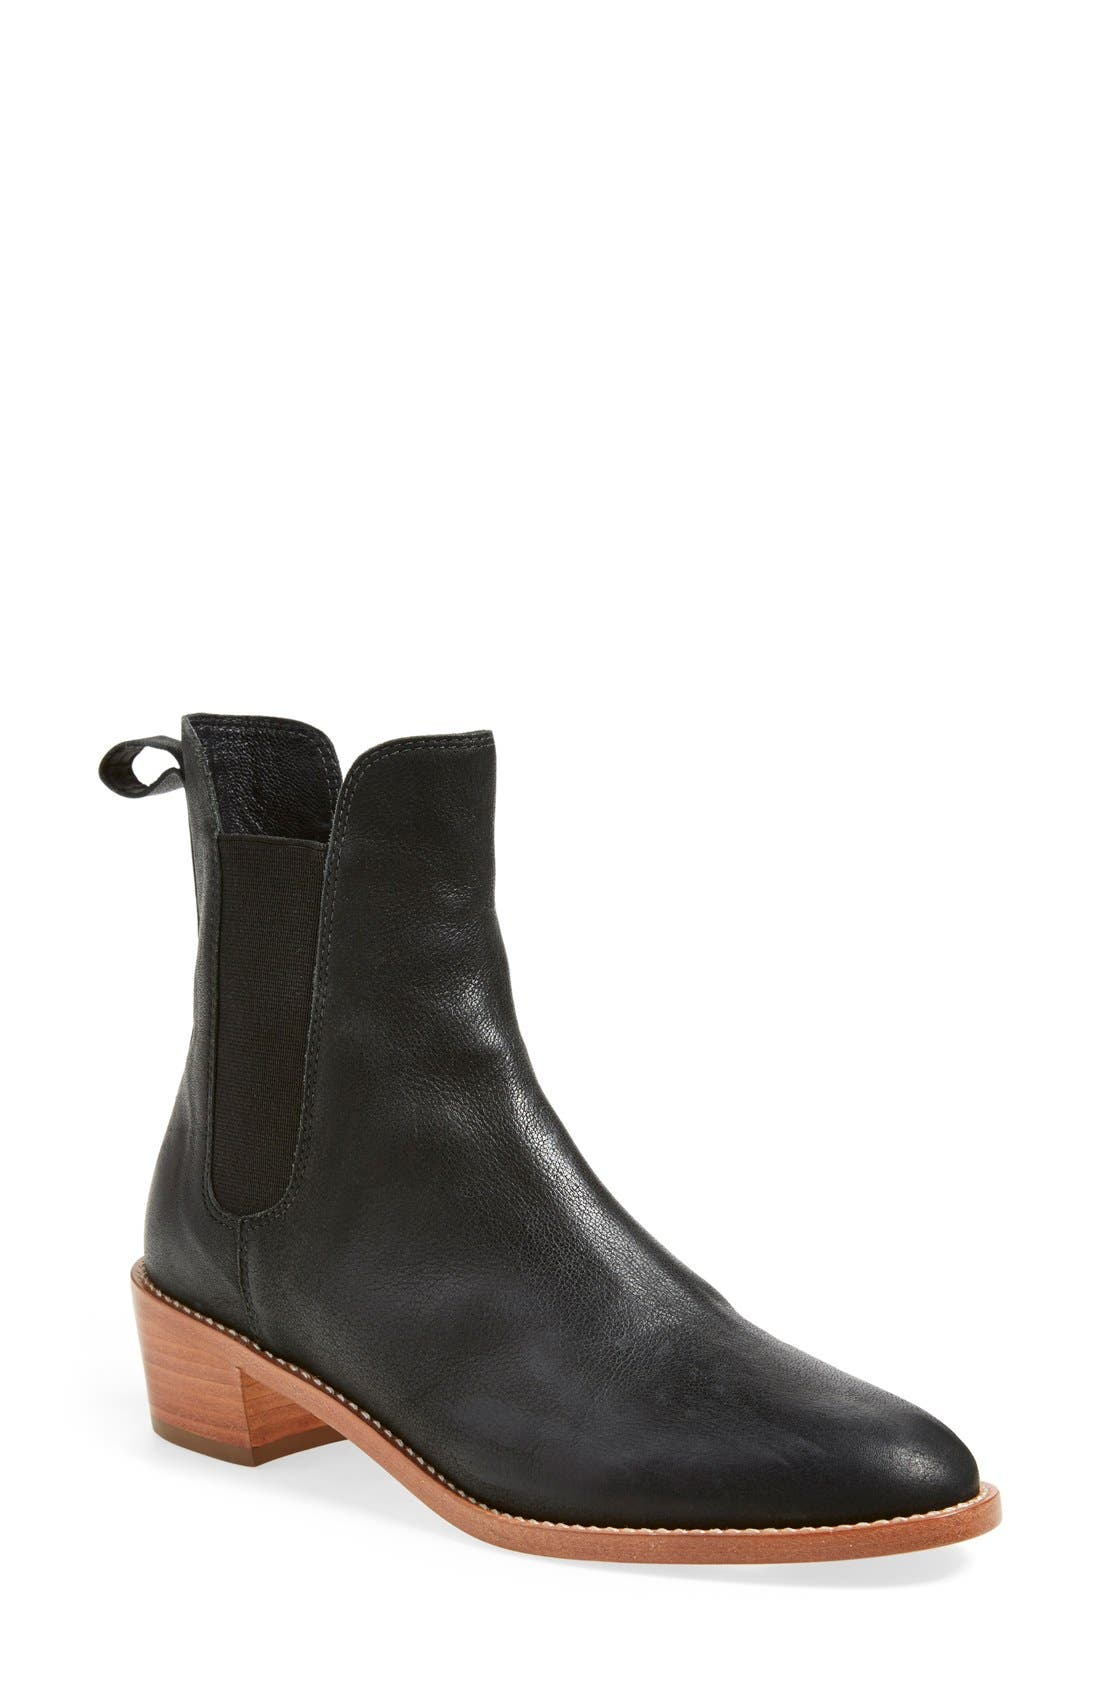 Alternate Image 1 Selected - Loeffler Randall 'Carmen' Chelsea Boot (Women)